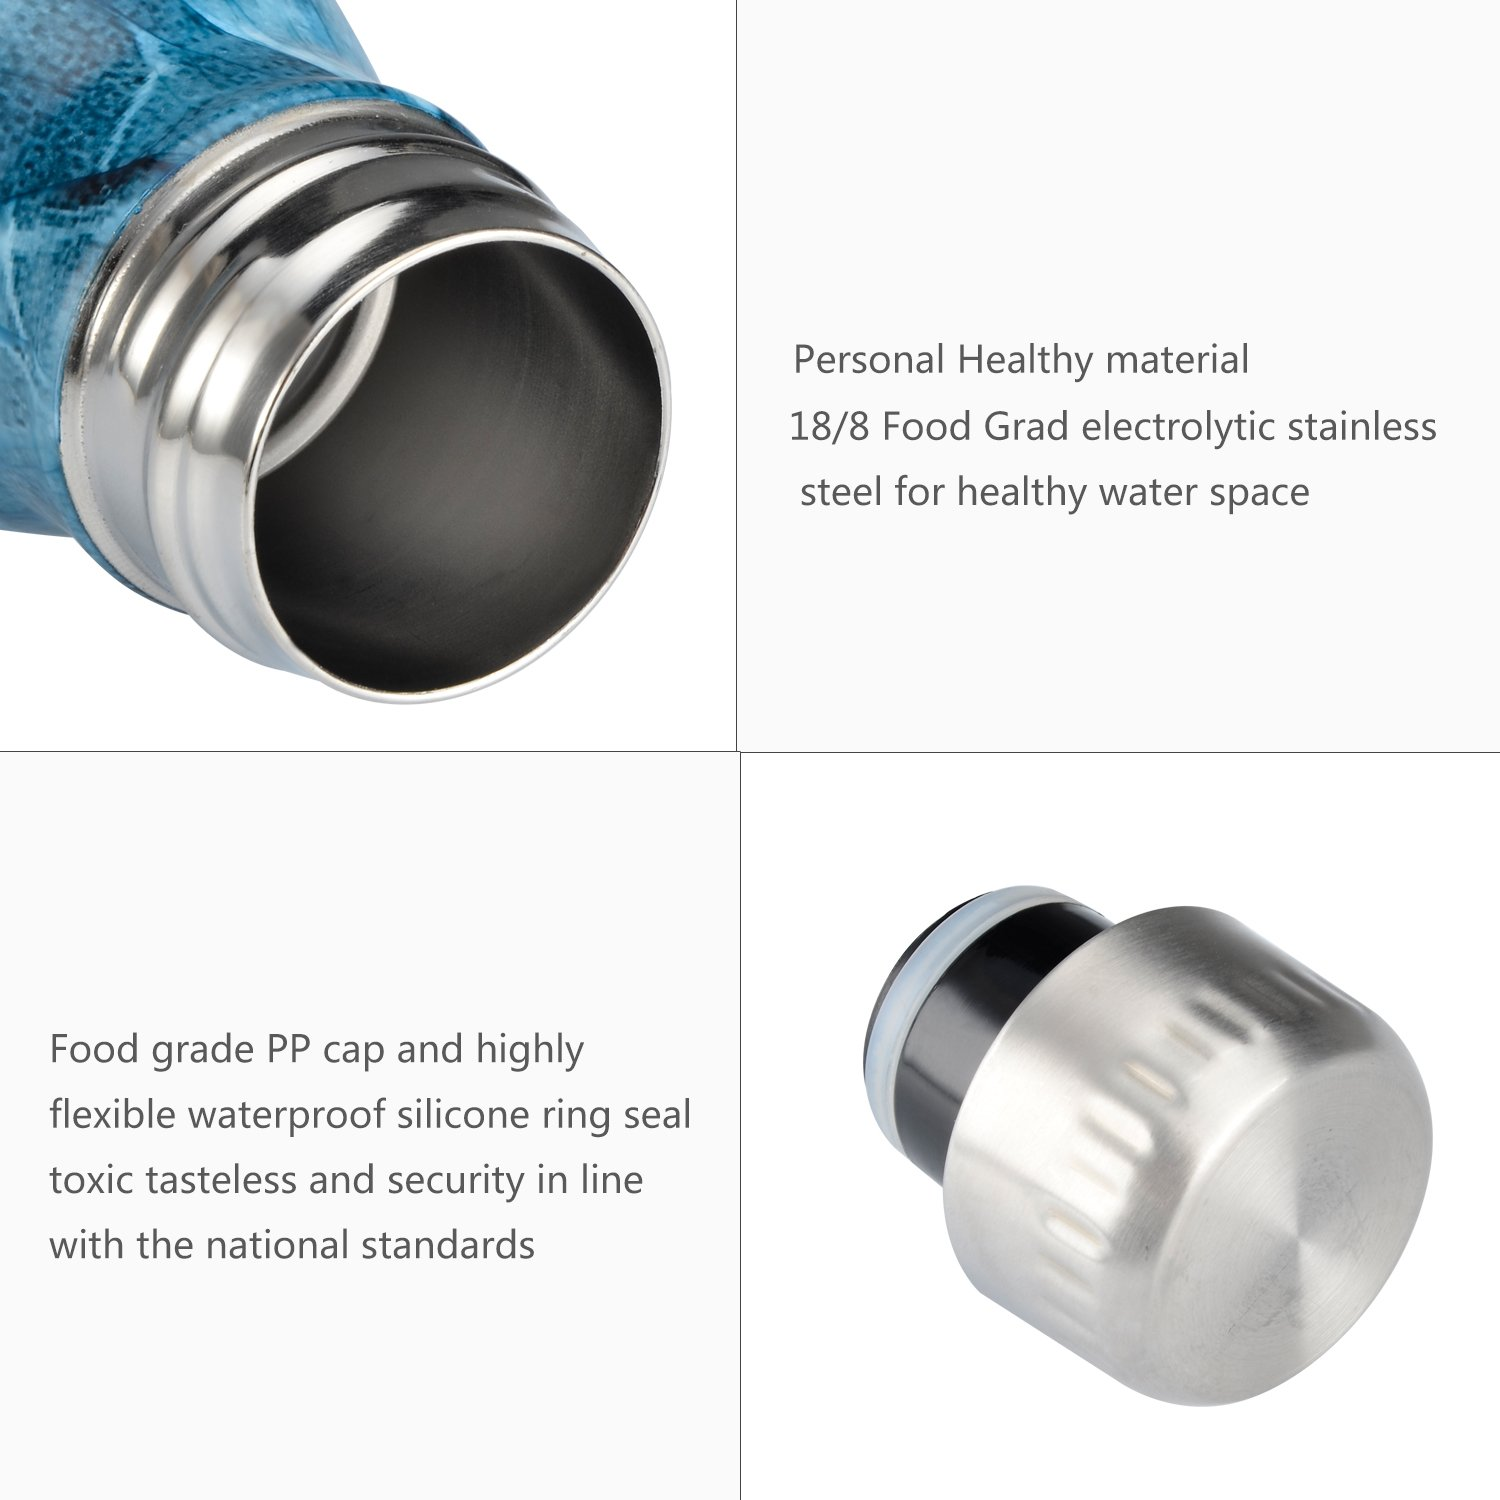 JunliGarden Bpa Free Stainless Steel Bottles Water Bottle With For Outside Sports Activity Eco Friendly Drinks Bottle For Running Gym Cycling